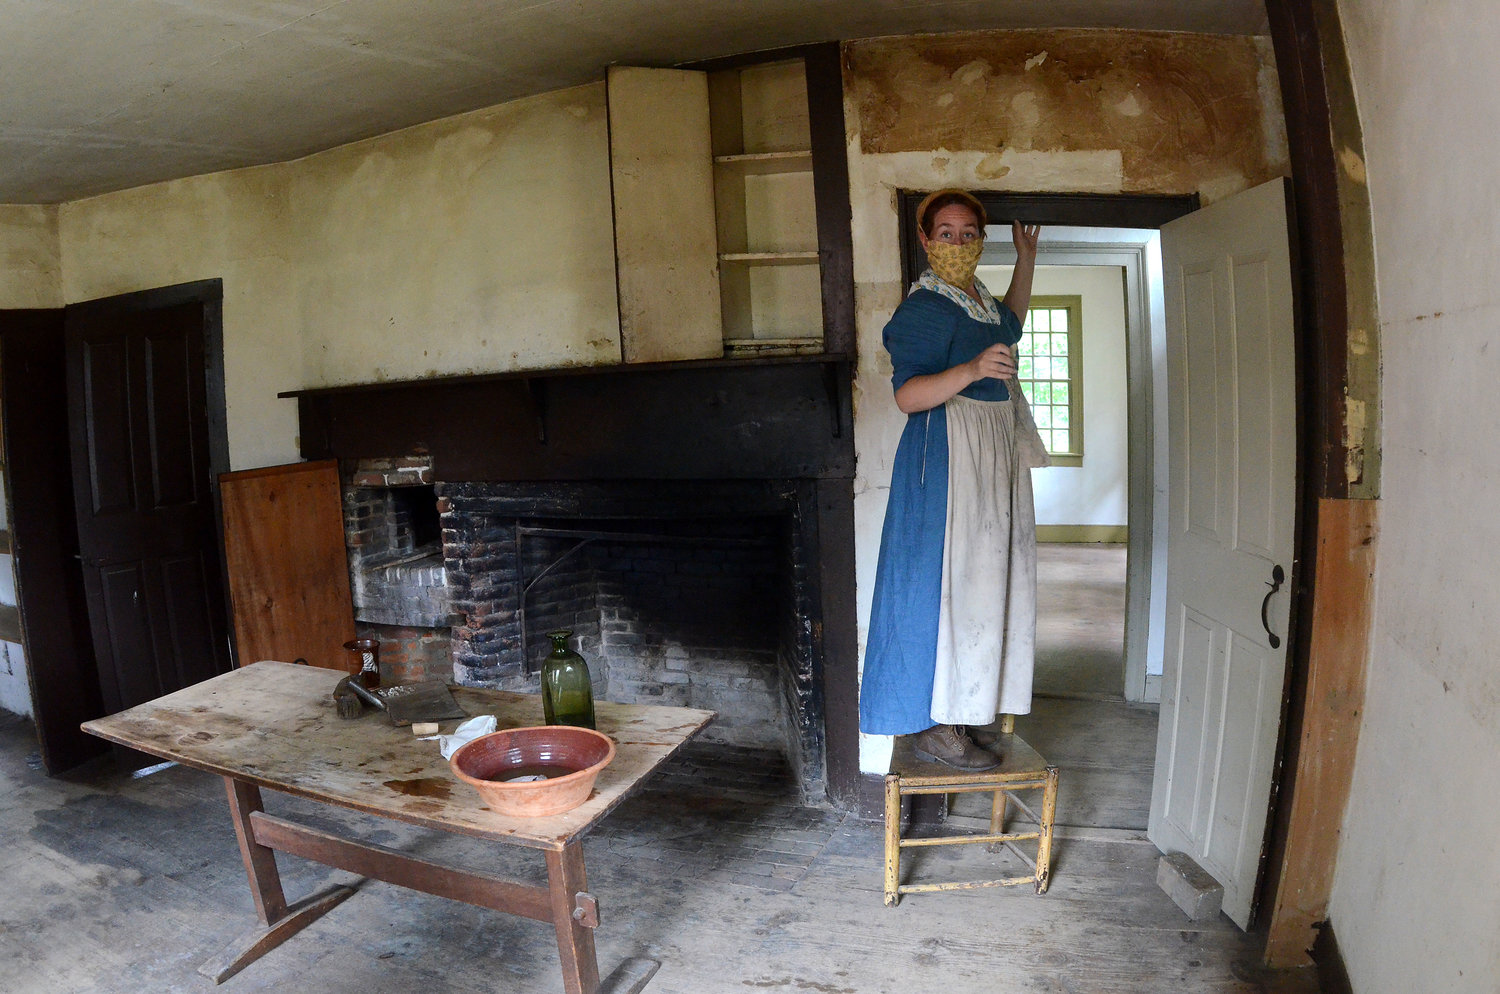 Coggeshall Farm program coordinator Eleanor Langham washes the walls in the main building with vinegar and water.